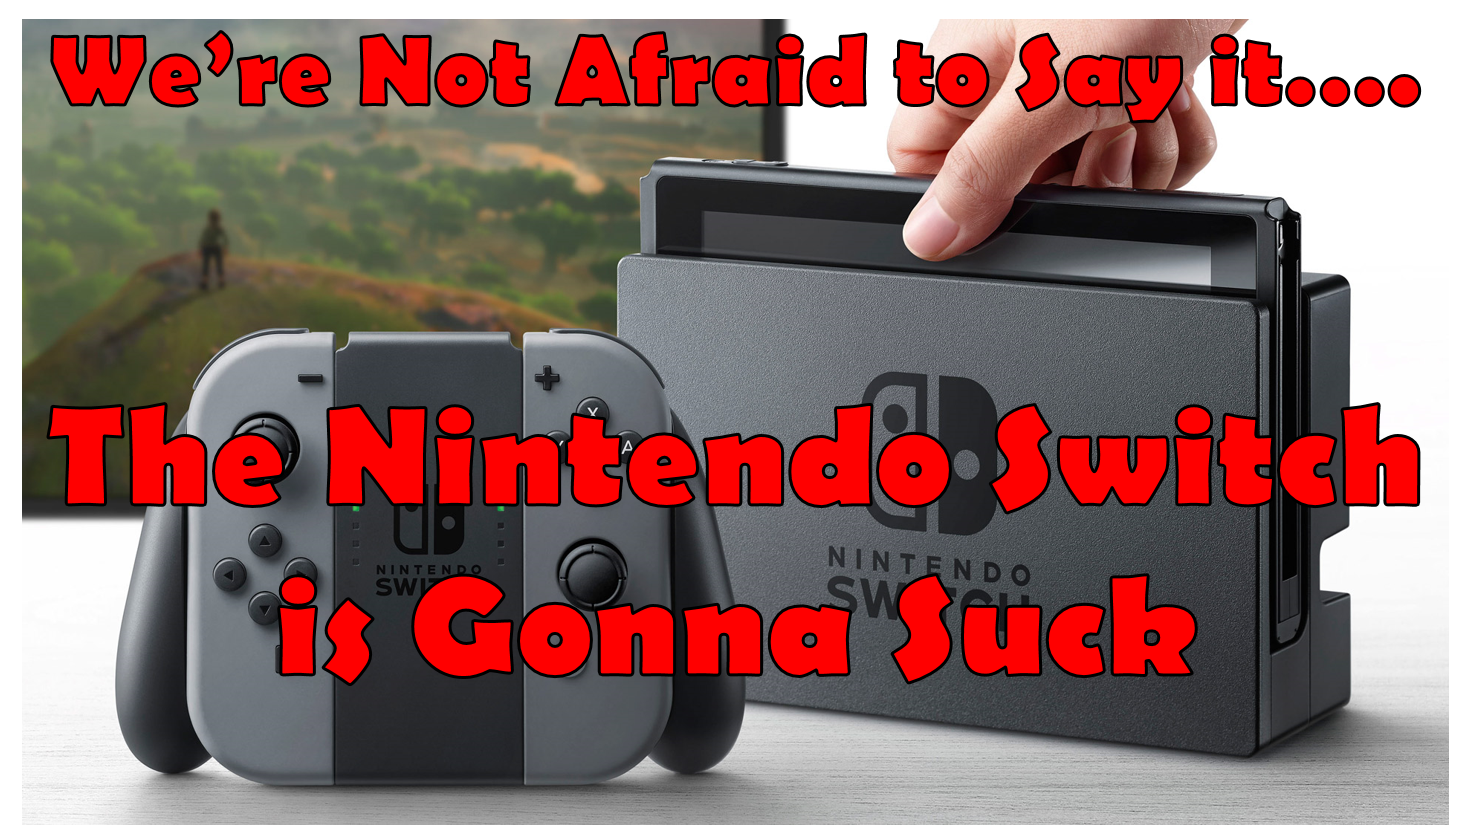 We're Not Afraid To Say It: The Nintendo Switch Is Gonna Suck